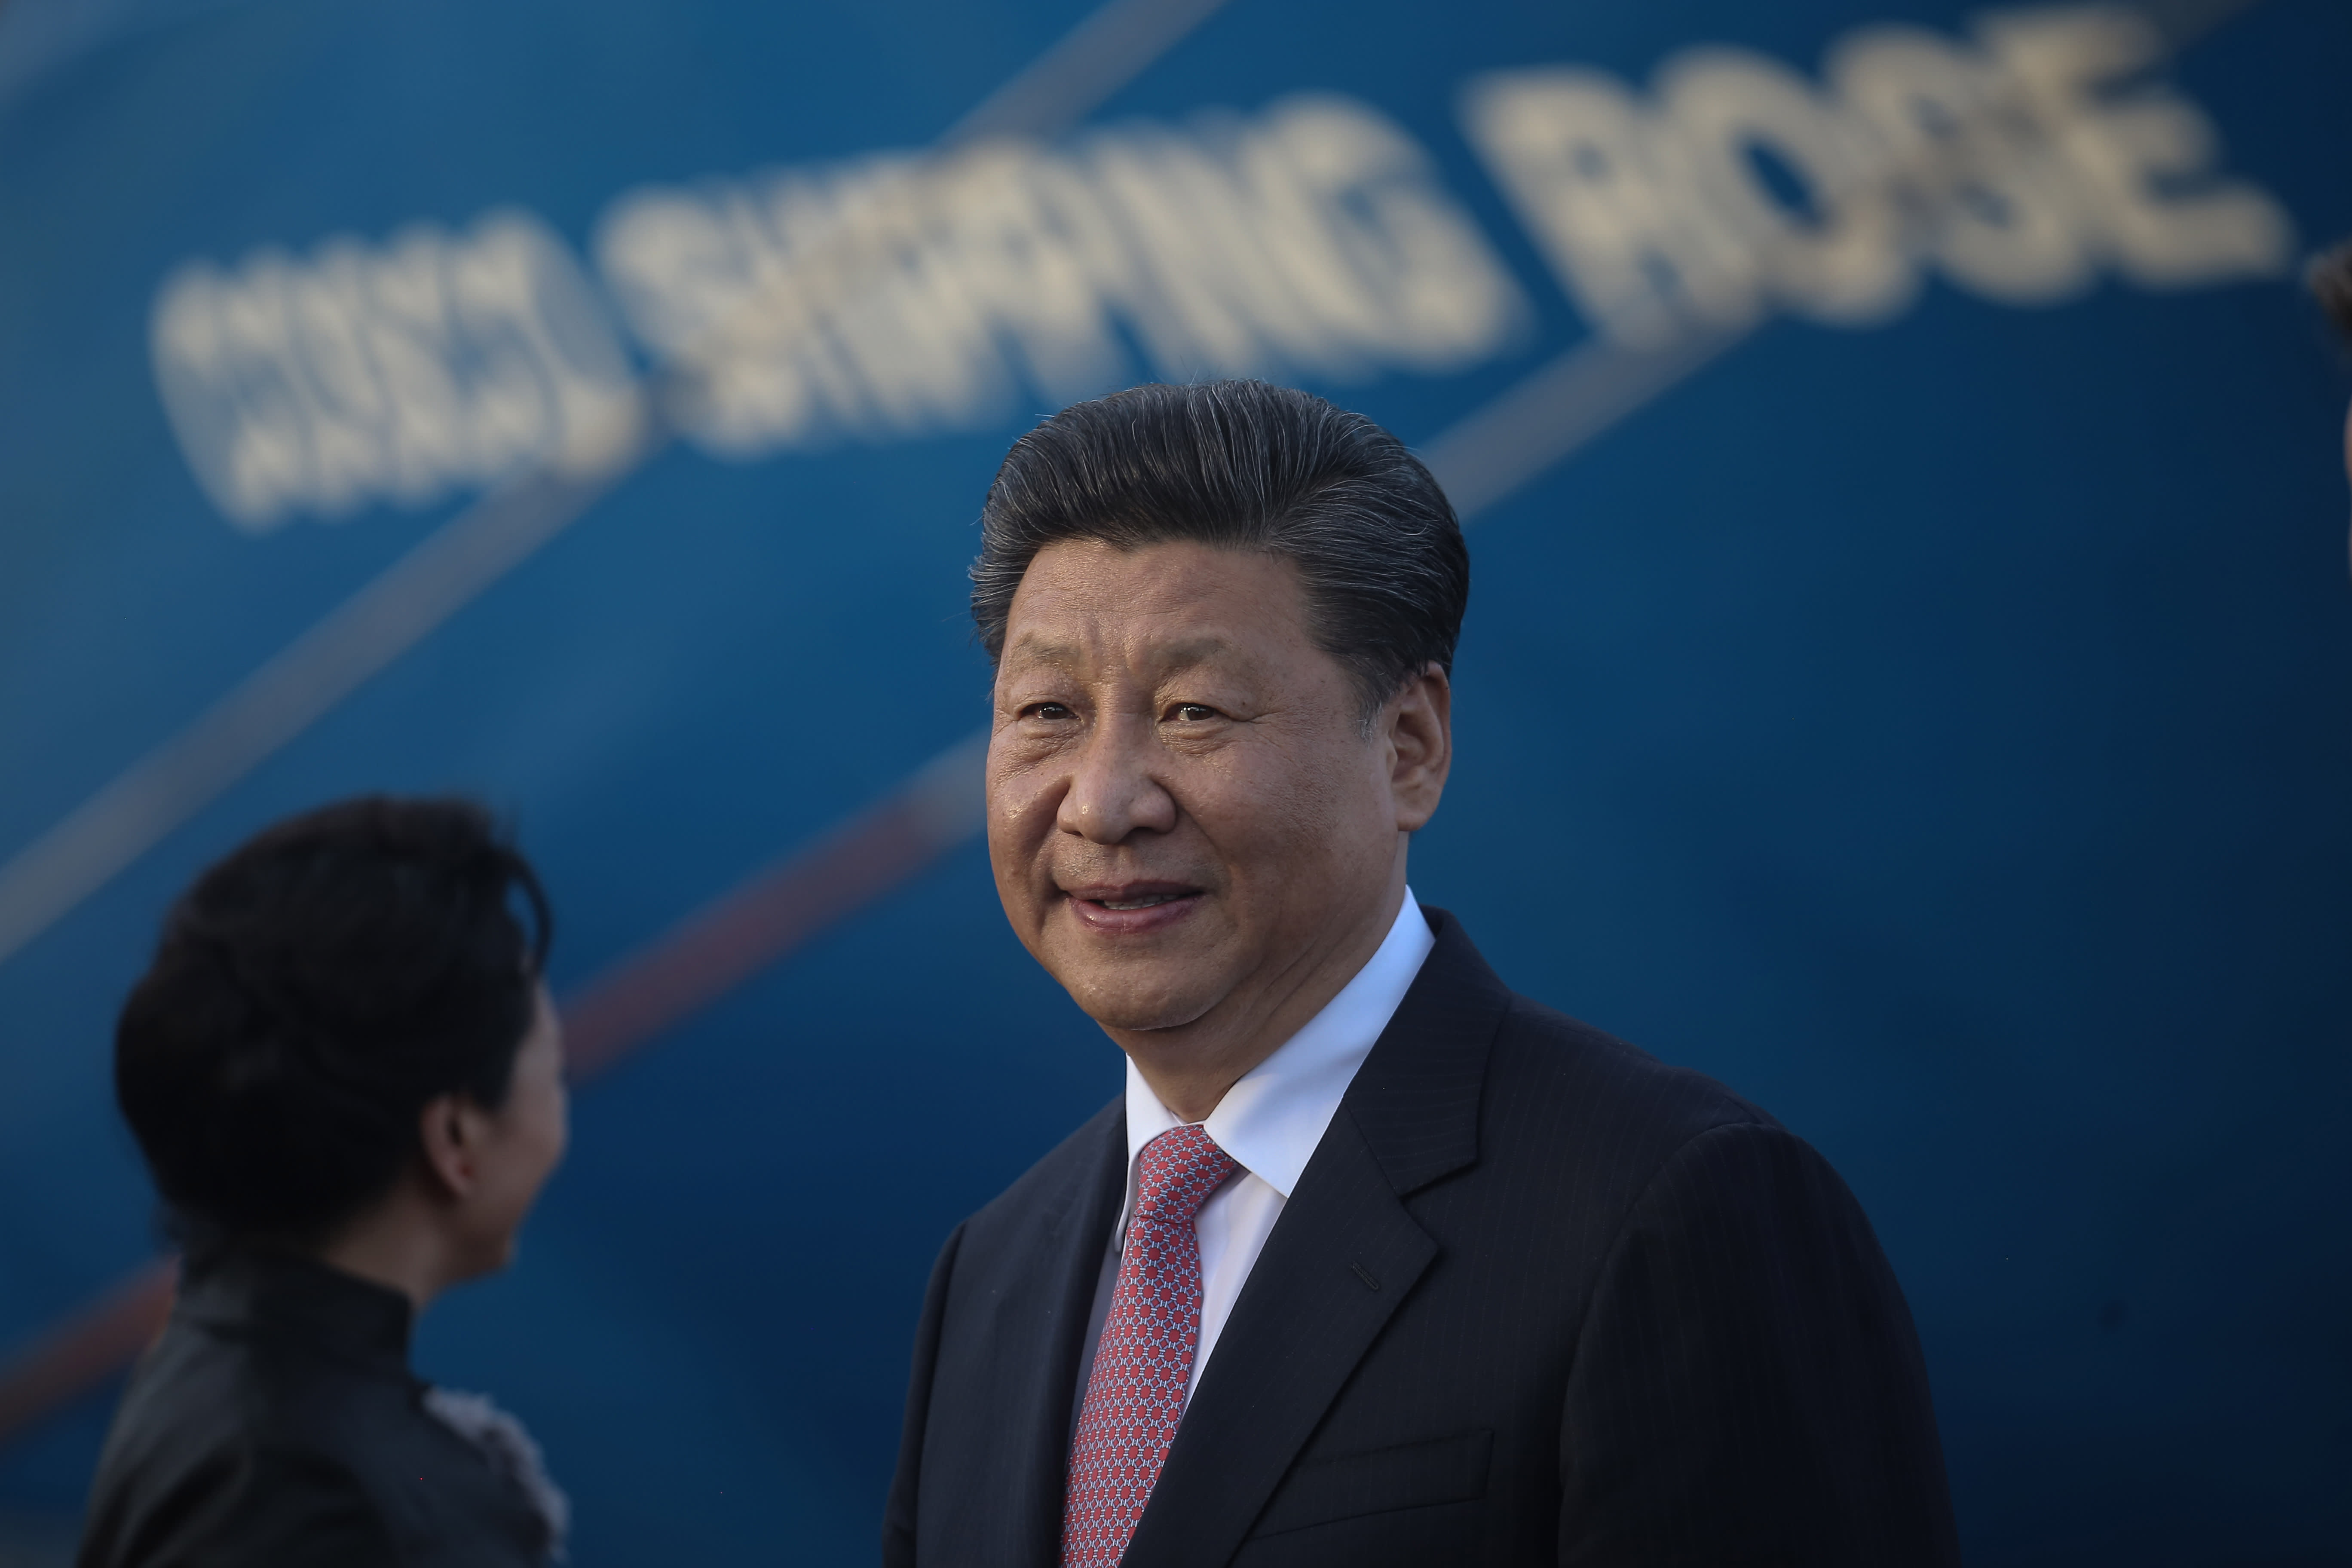 Amid criticism, China's Xi says Belt and Road project can be 'shared by the world'